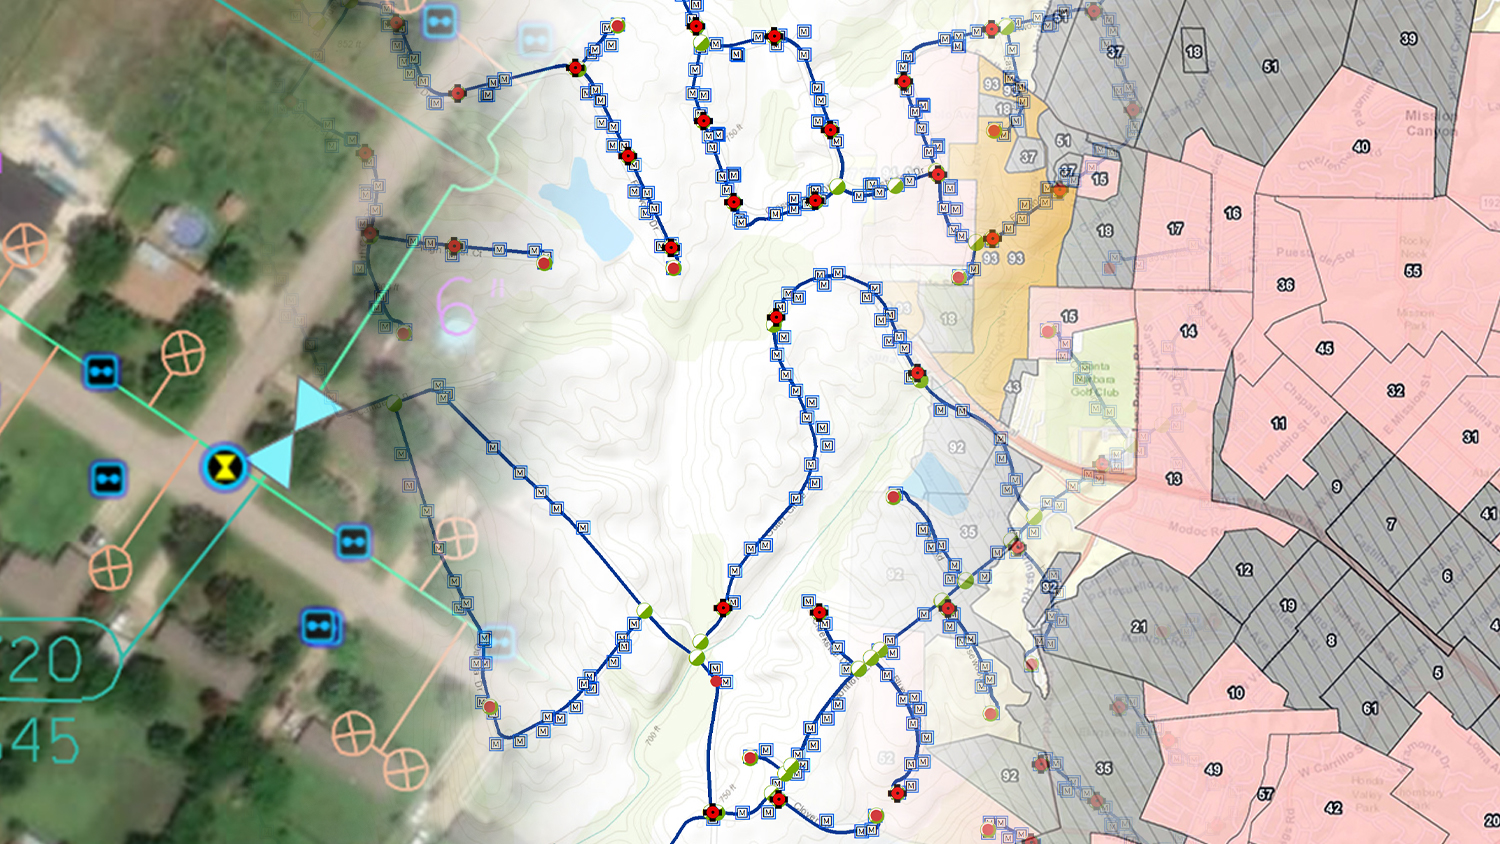 5 Ways Water Utilities are Transforming Data Collection GPS GIS GNSS Esri ArcGIS Field Maps, ArcGIS Collector, Eos Tools Pro, Arrow